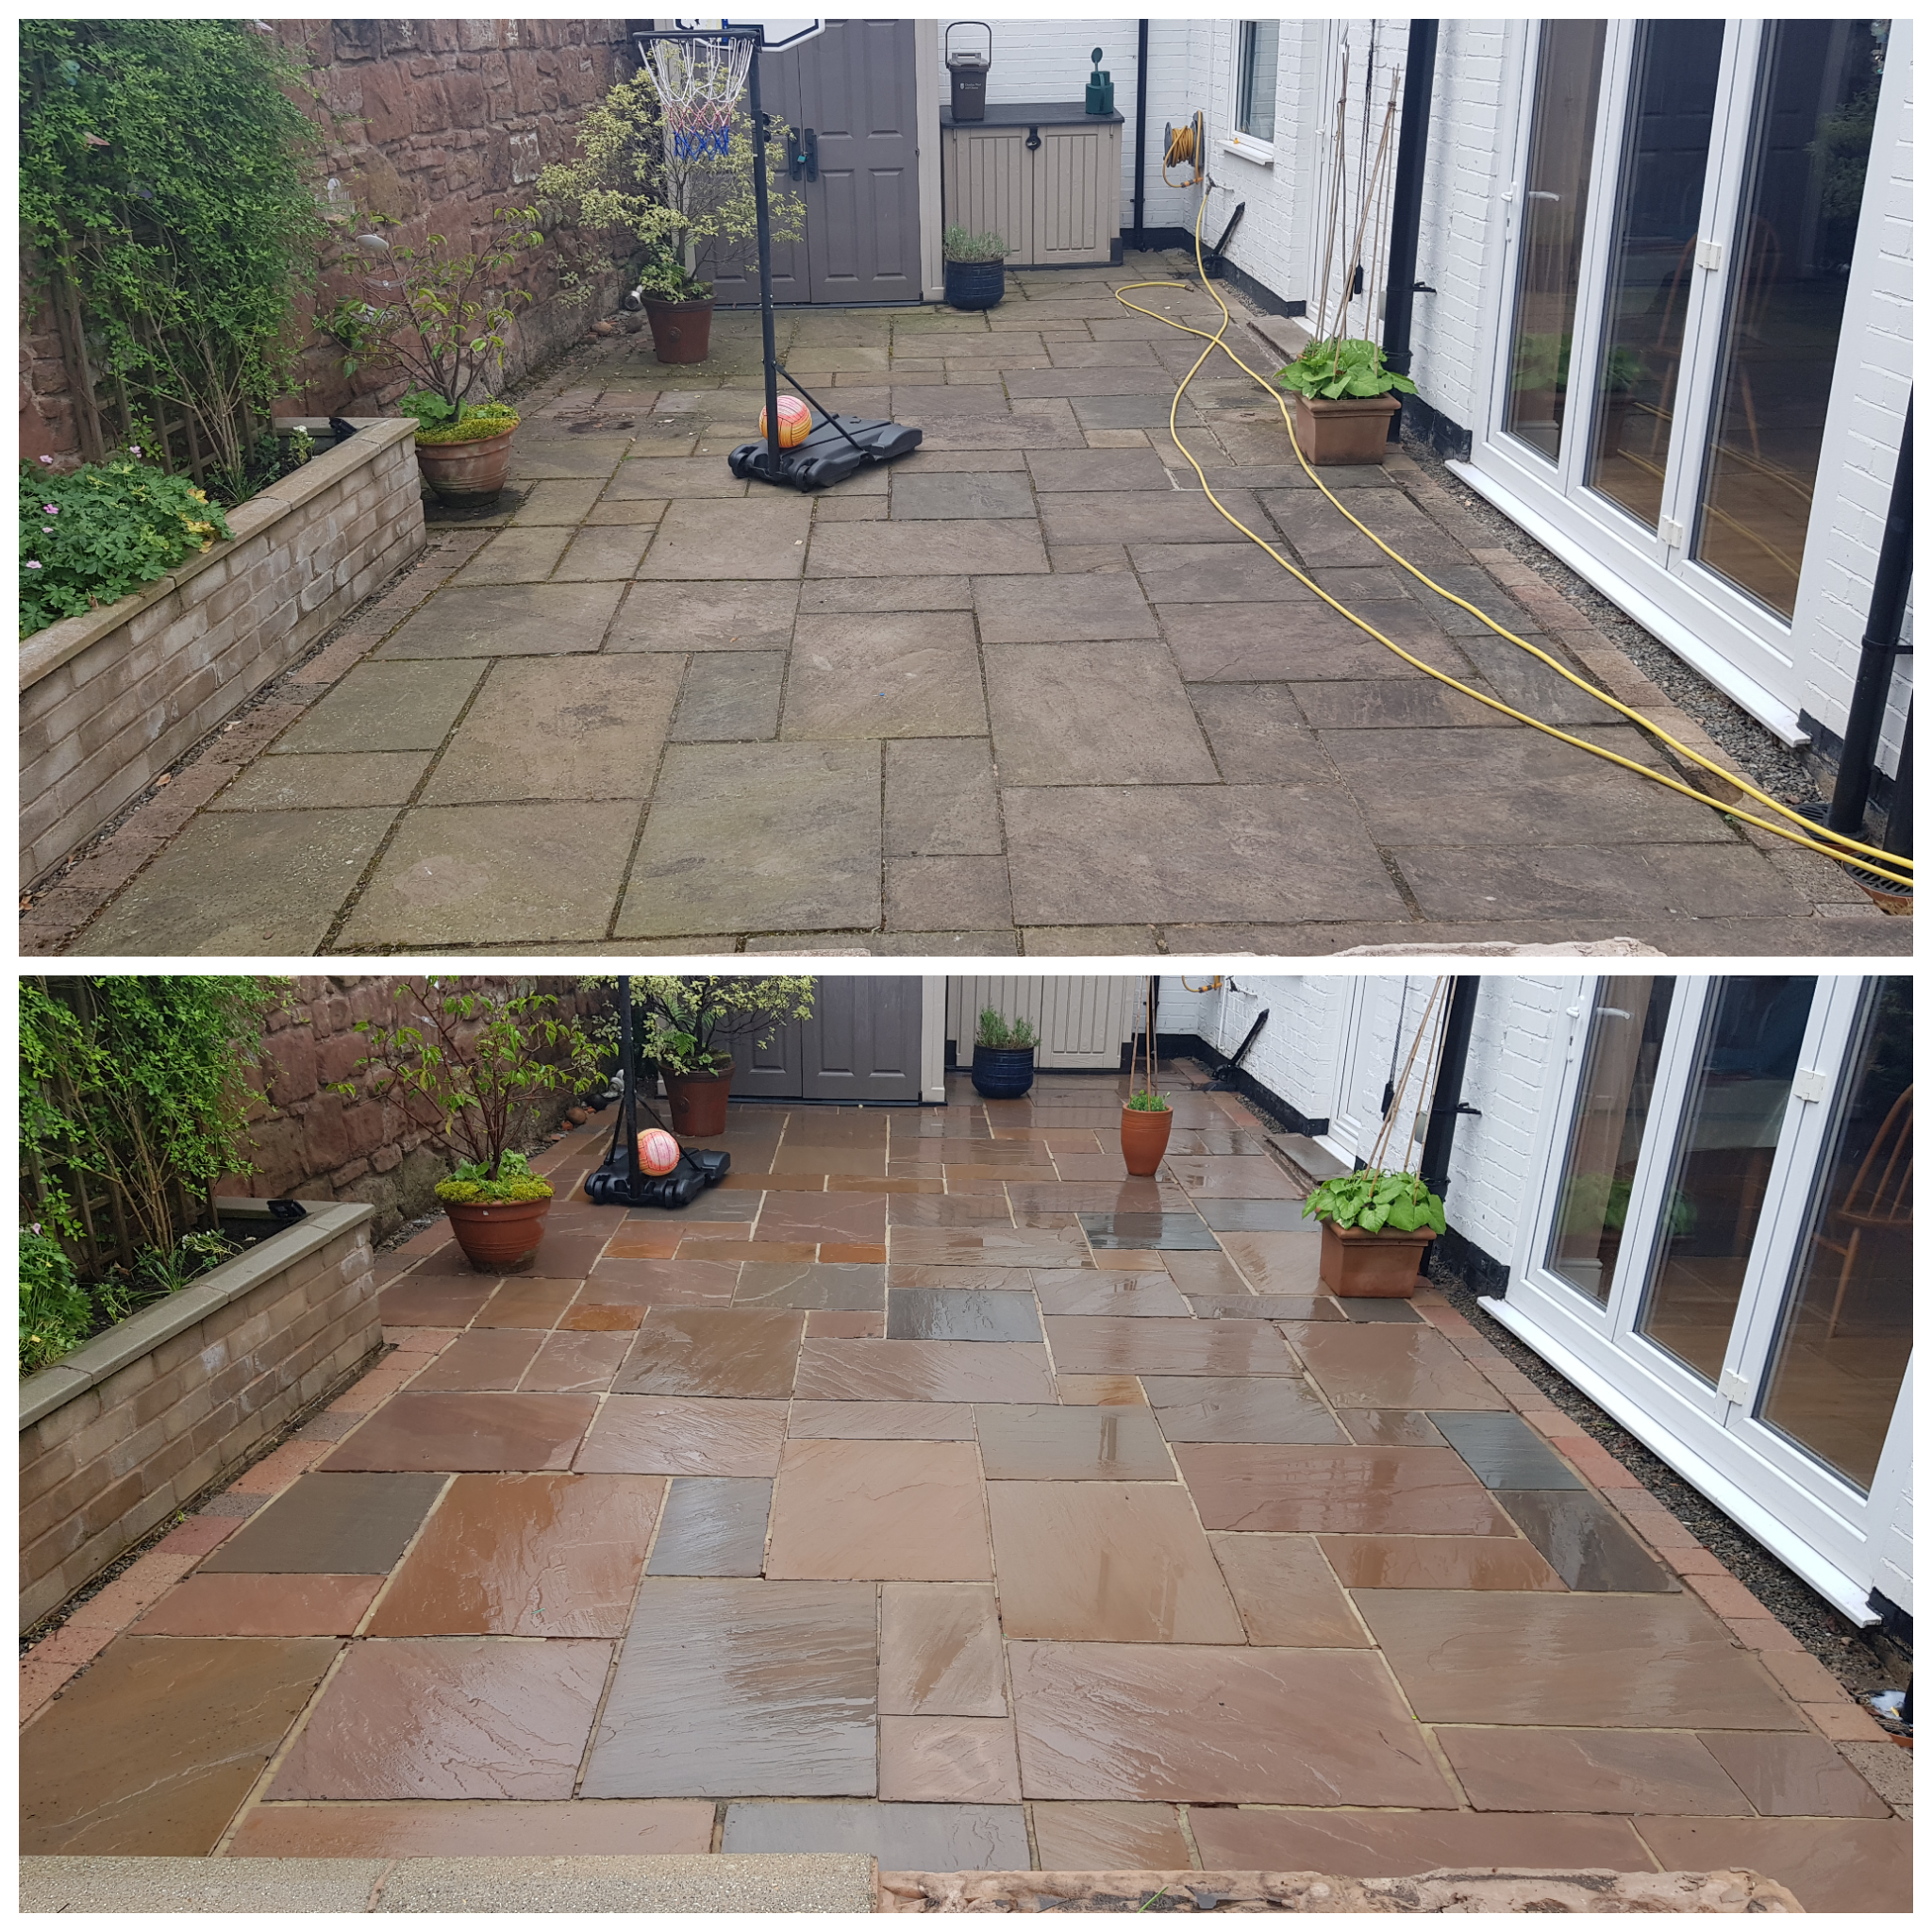 PicsArt_05-25-08.02.58 Indian Sandstone Driveway, Patio & Path Cleaning - Little Neston, Cheshire